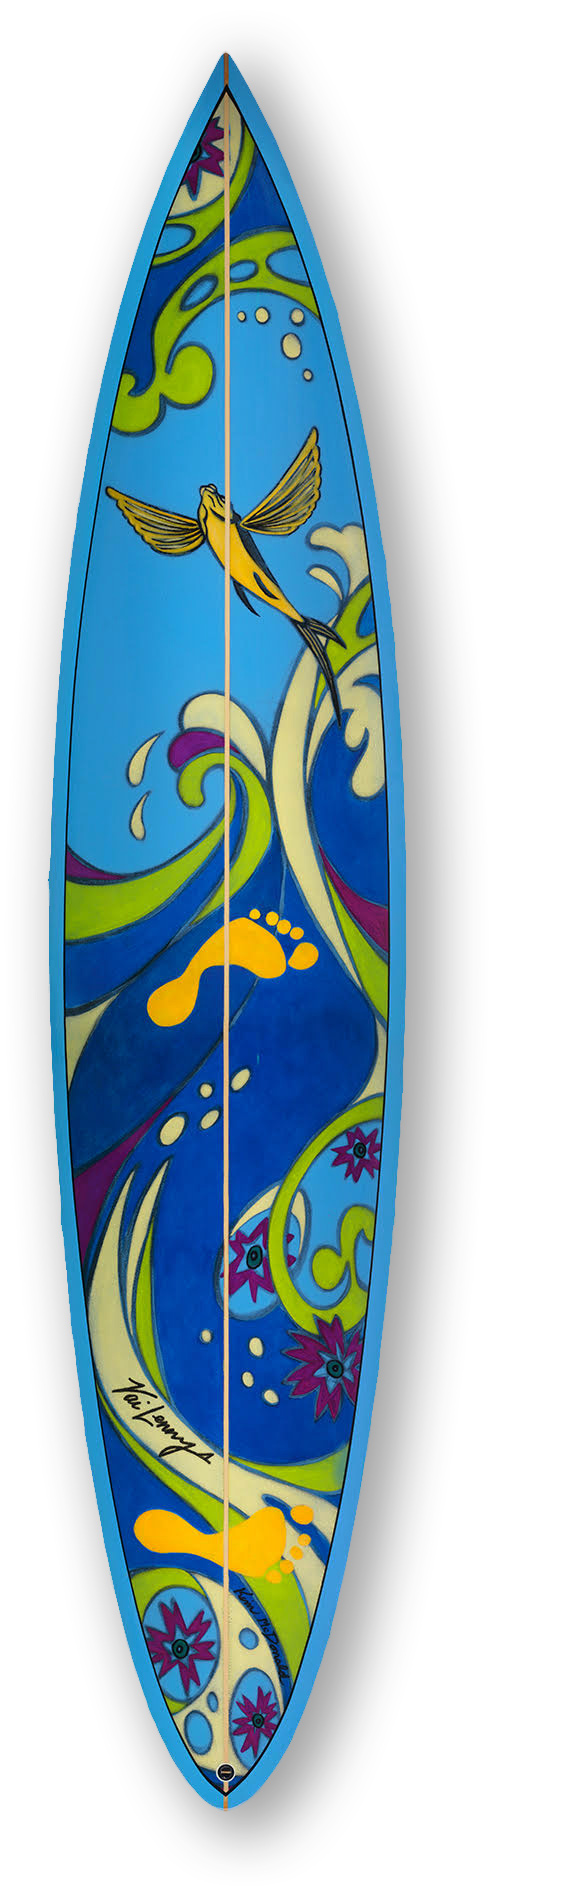 "North Shore: ""Heart & Soul"" Size 7'6"" Gun Surfboard"